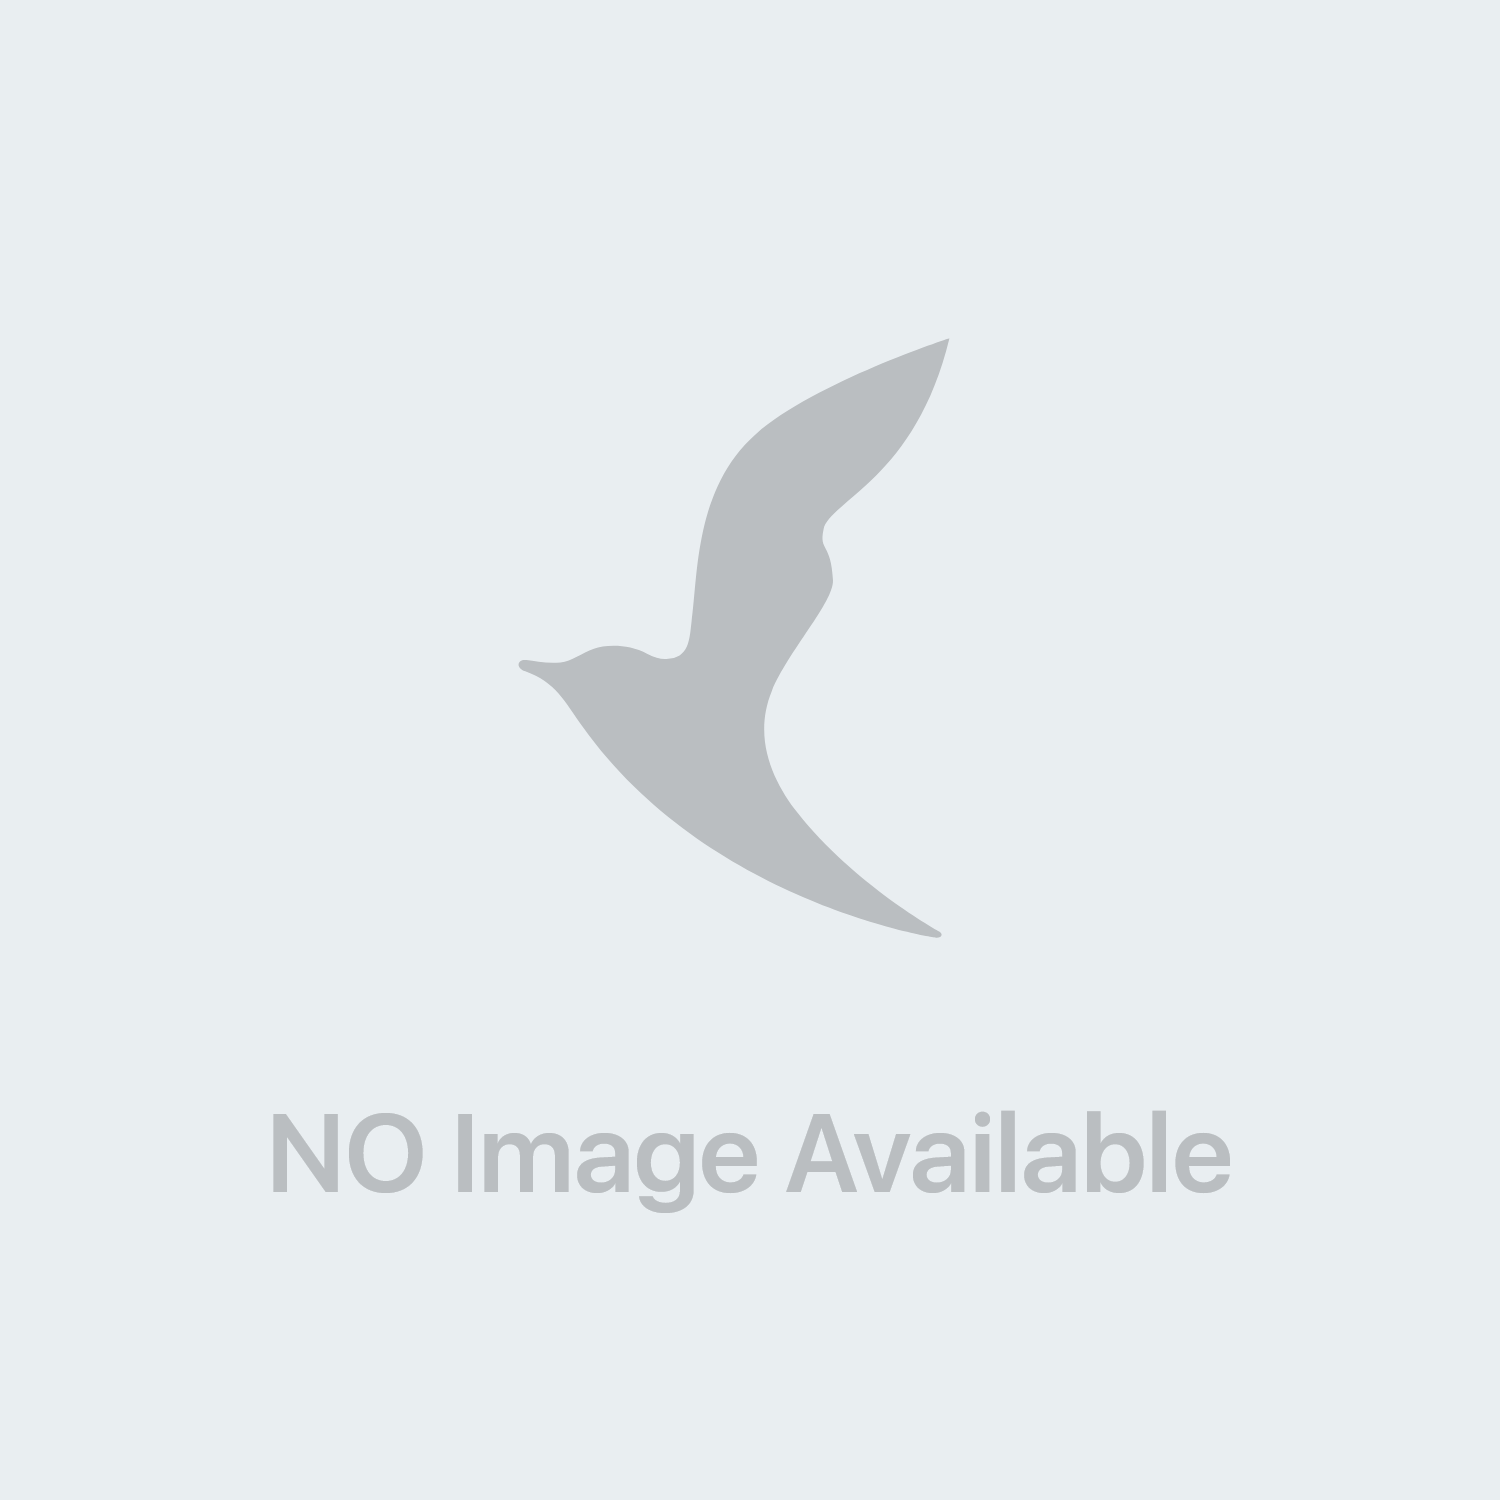 Courgnè Crema Corone Zoccoli Cavalli 250 Ml